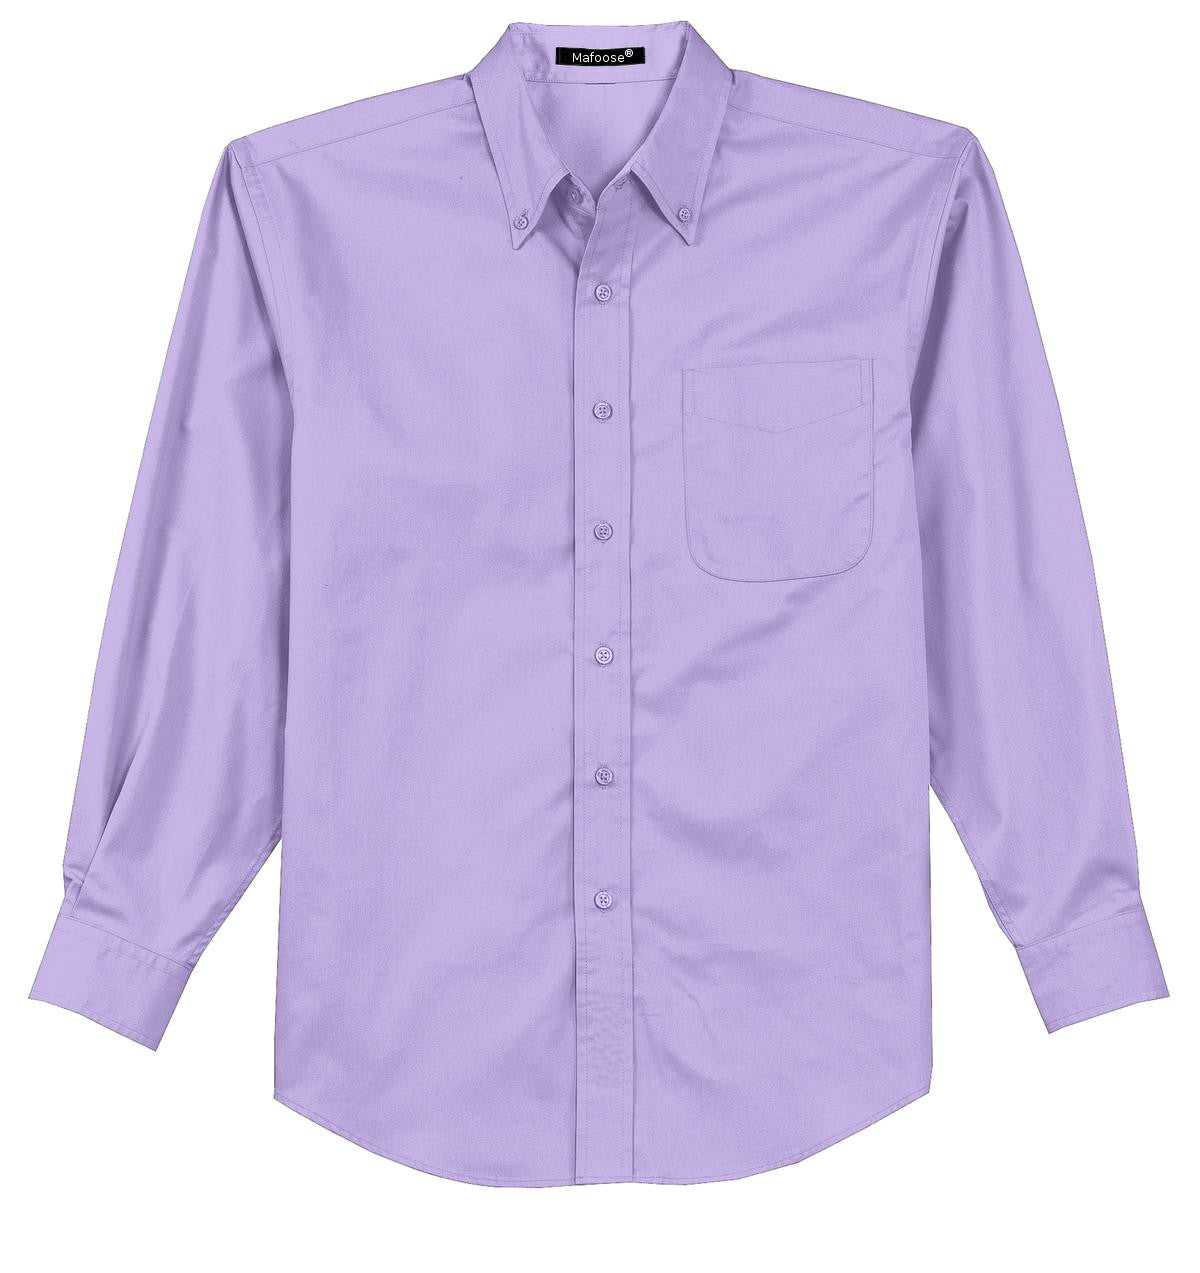 Mafoose Men's Tall Long Sleeve Easy Care Shirt Bright Lavender-Front